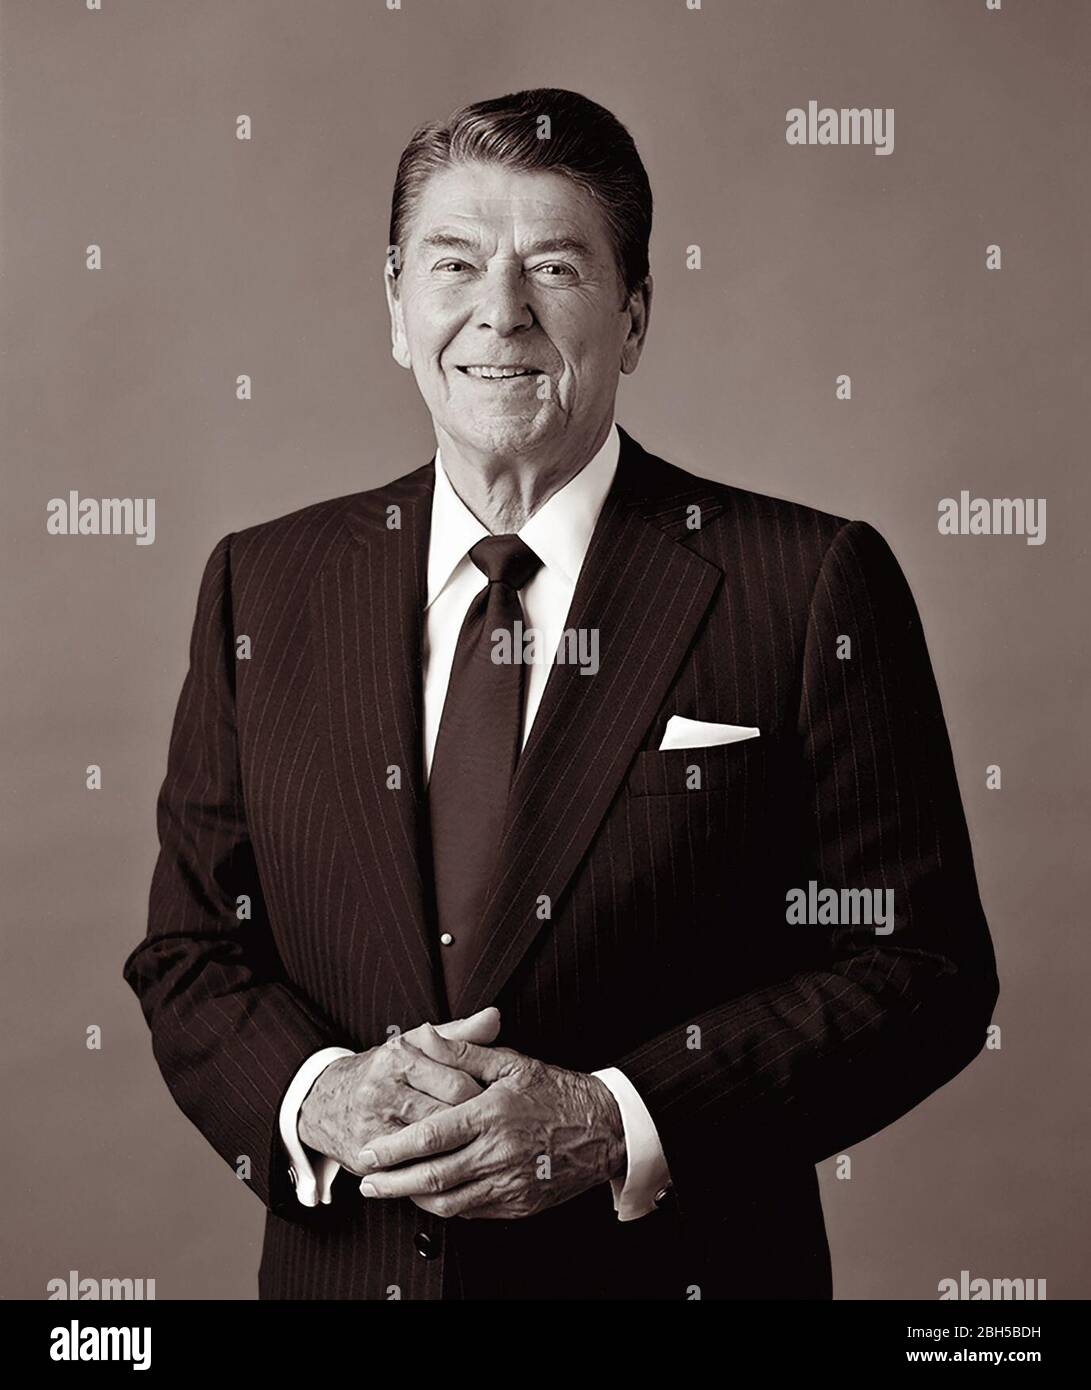 President Ronald Reagan (1911-2004), 40th President of the United States of America. Stock Photo